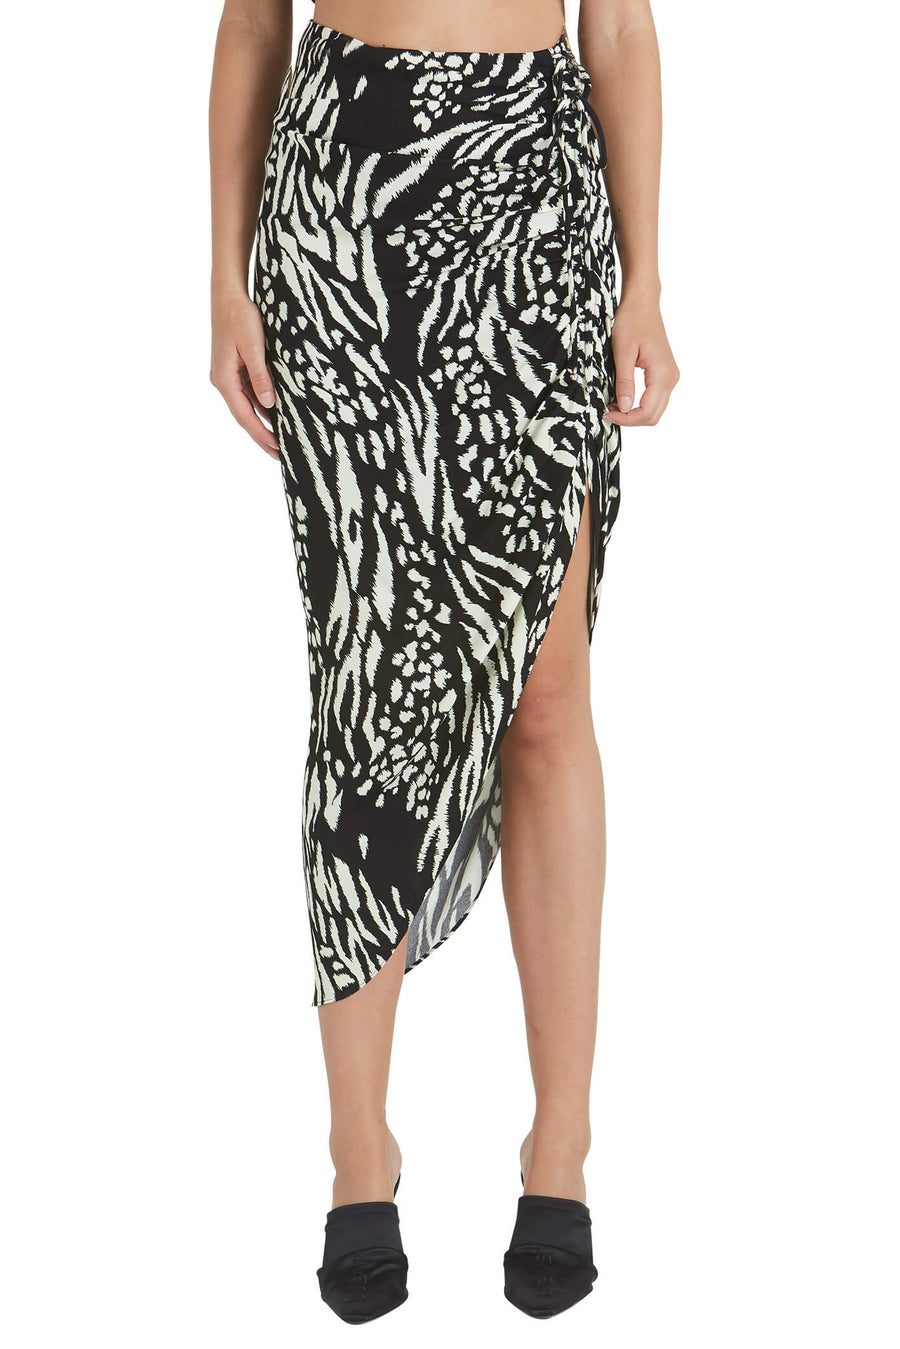 Veronica Beard Ari Midi Skirt in Black and Ivory from The New Trend